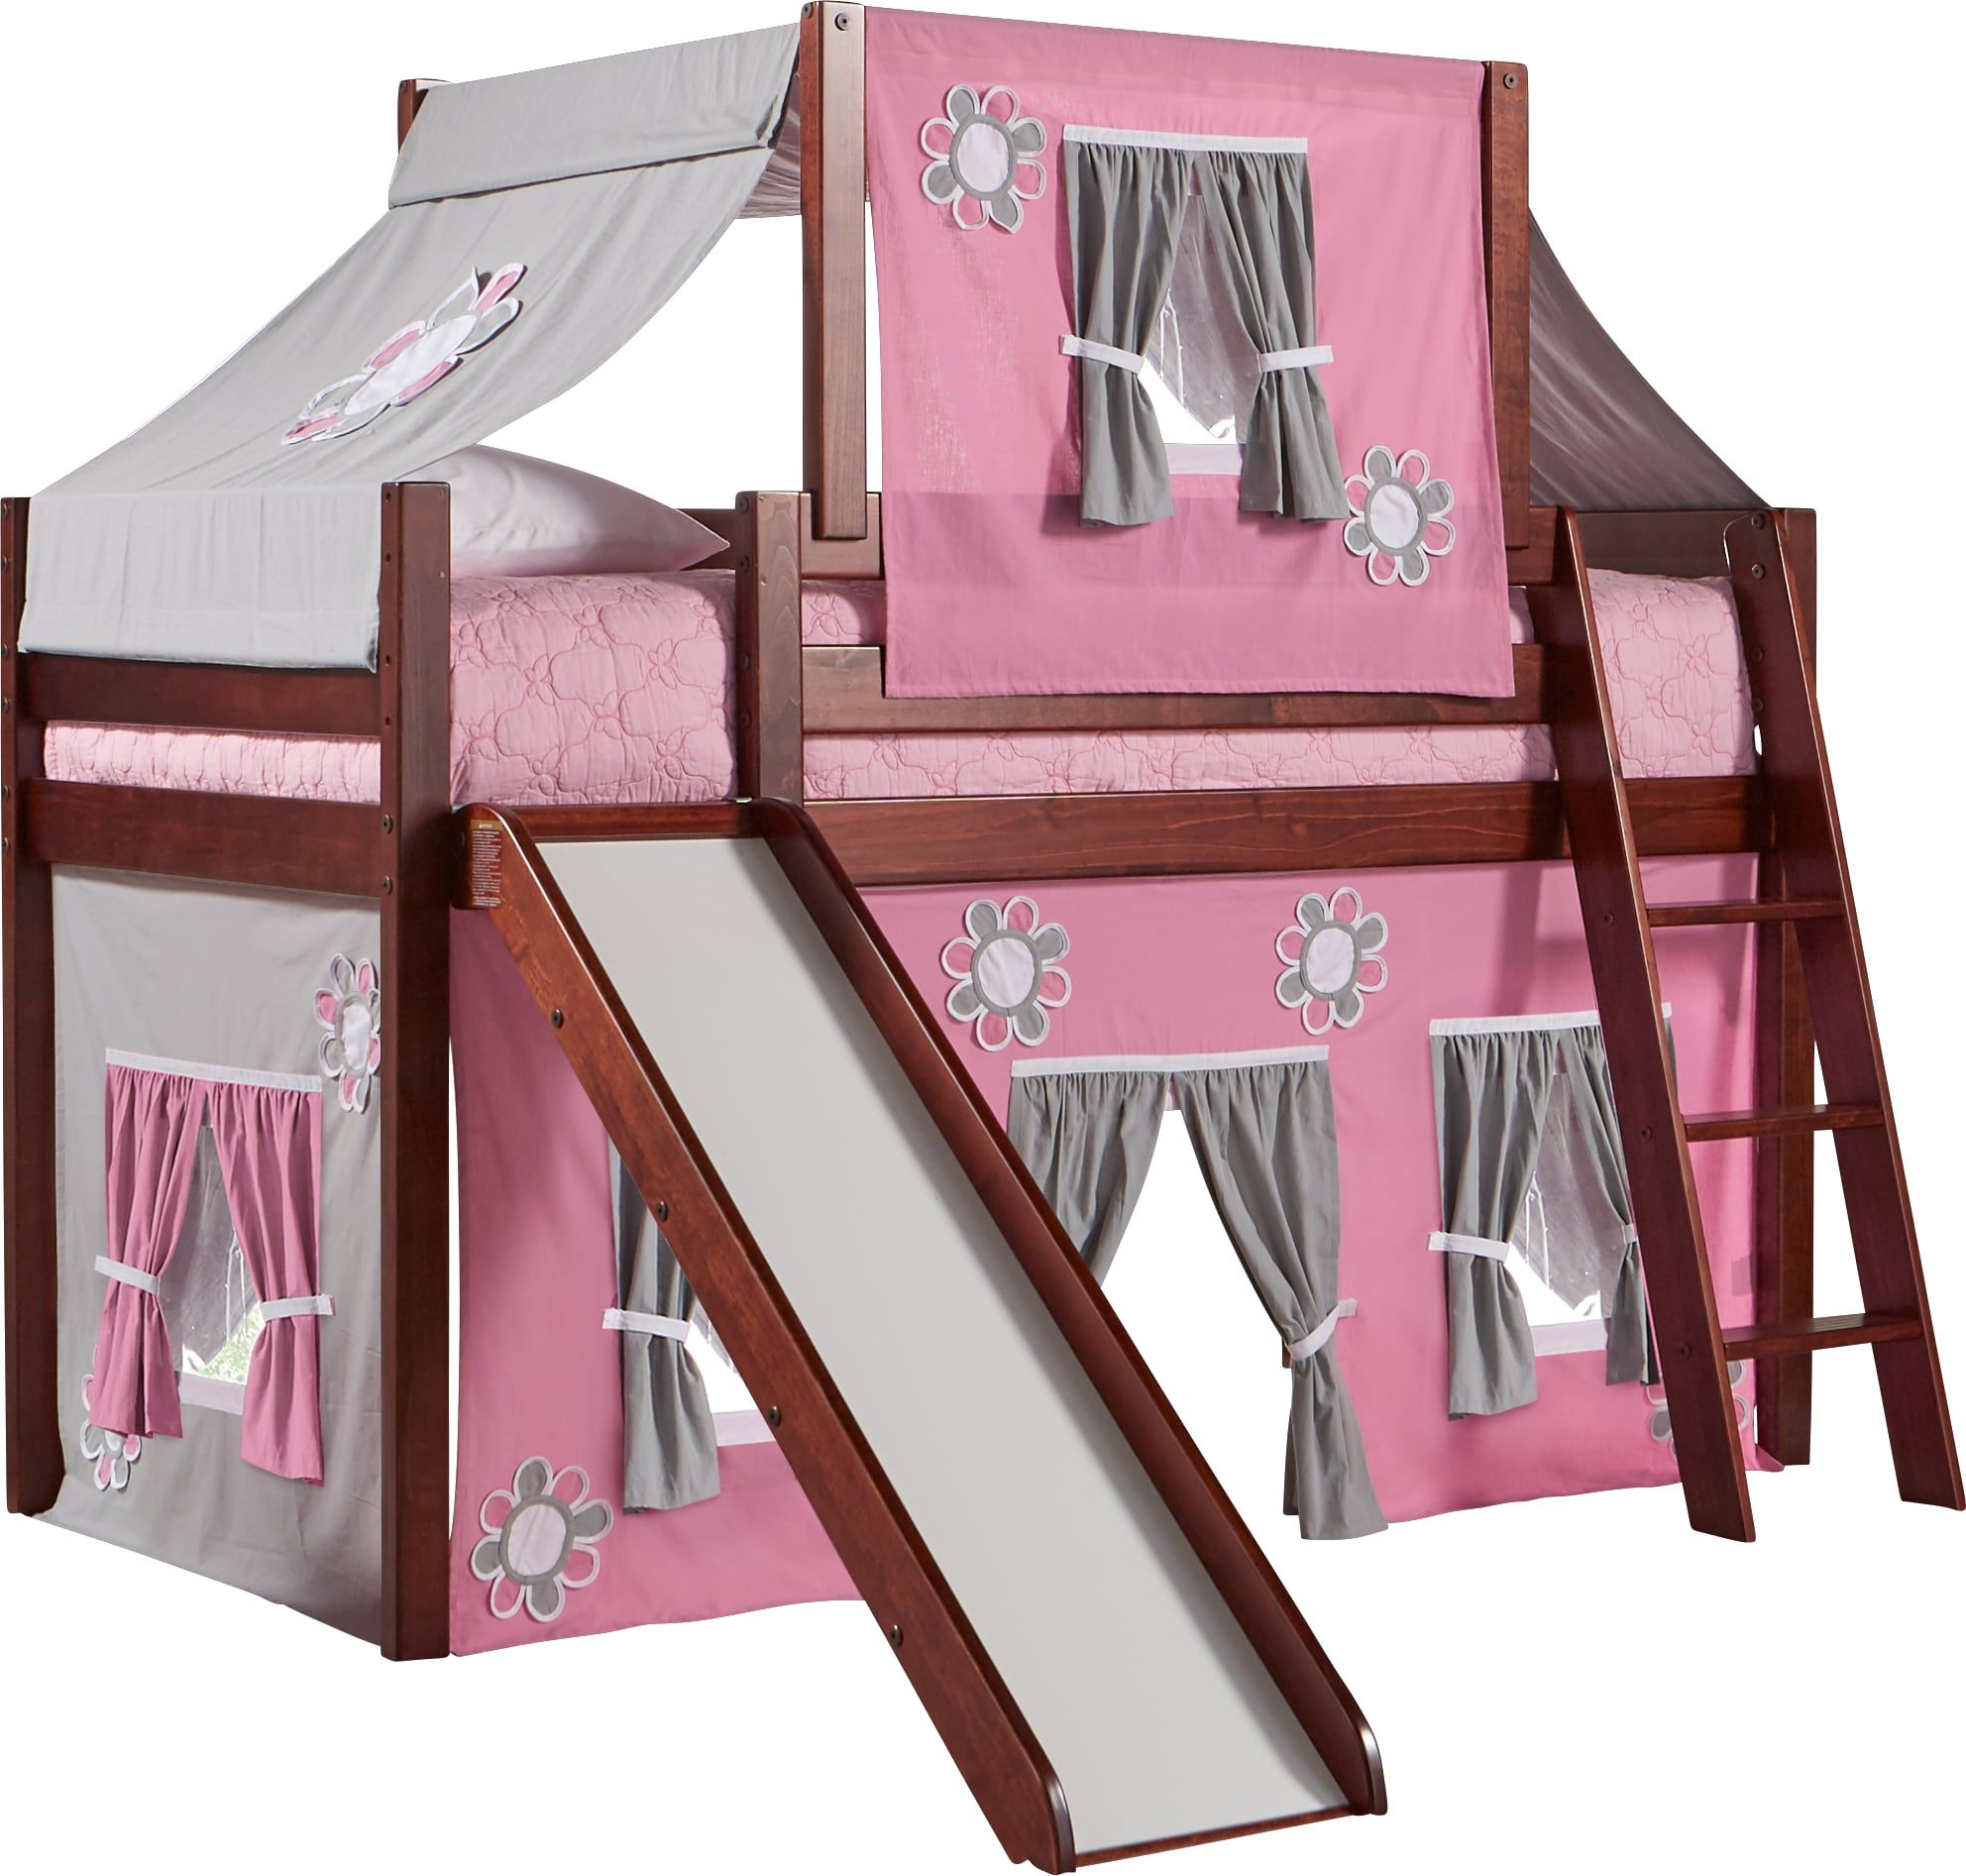 Pink Cottage Cherry Jr. Tent Loft Bed with Slide and Top